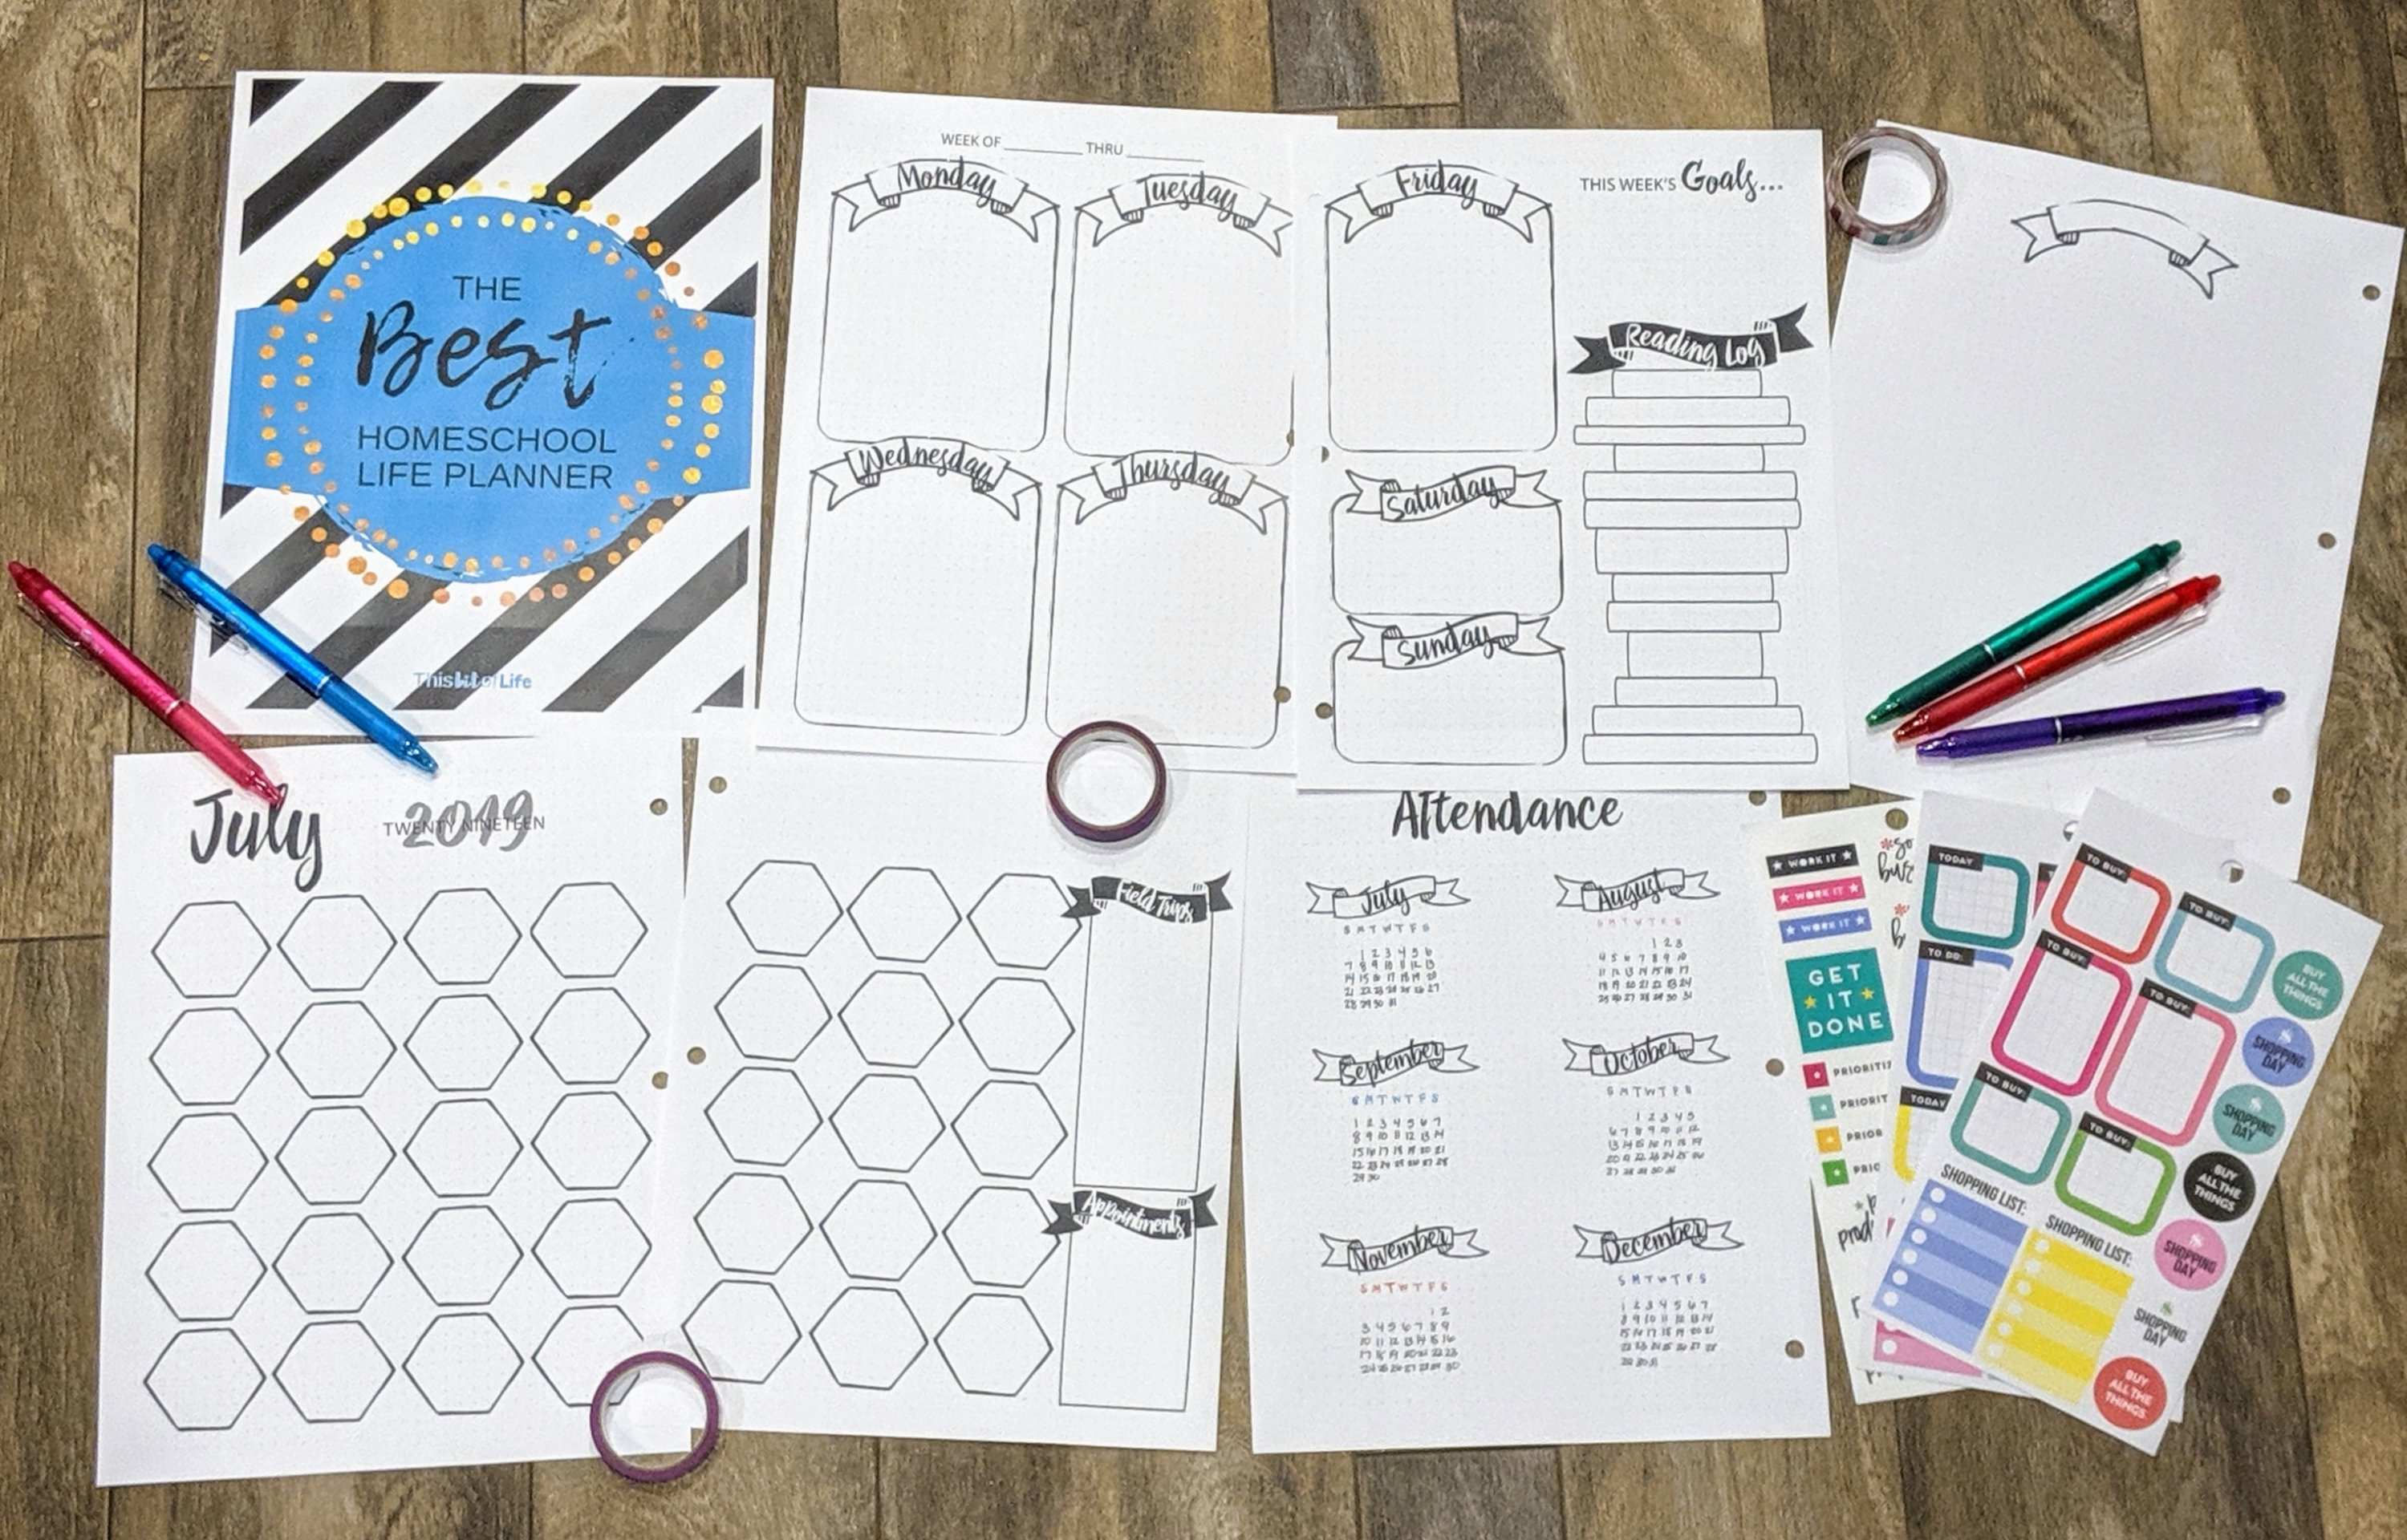 The Best Homeschool Life Planner